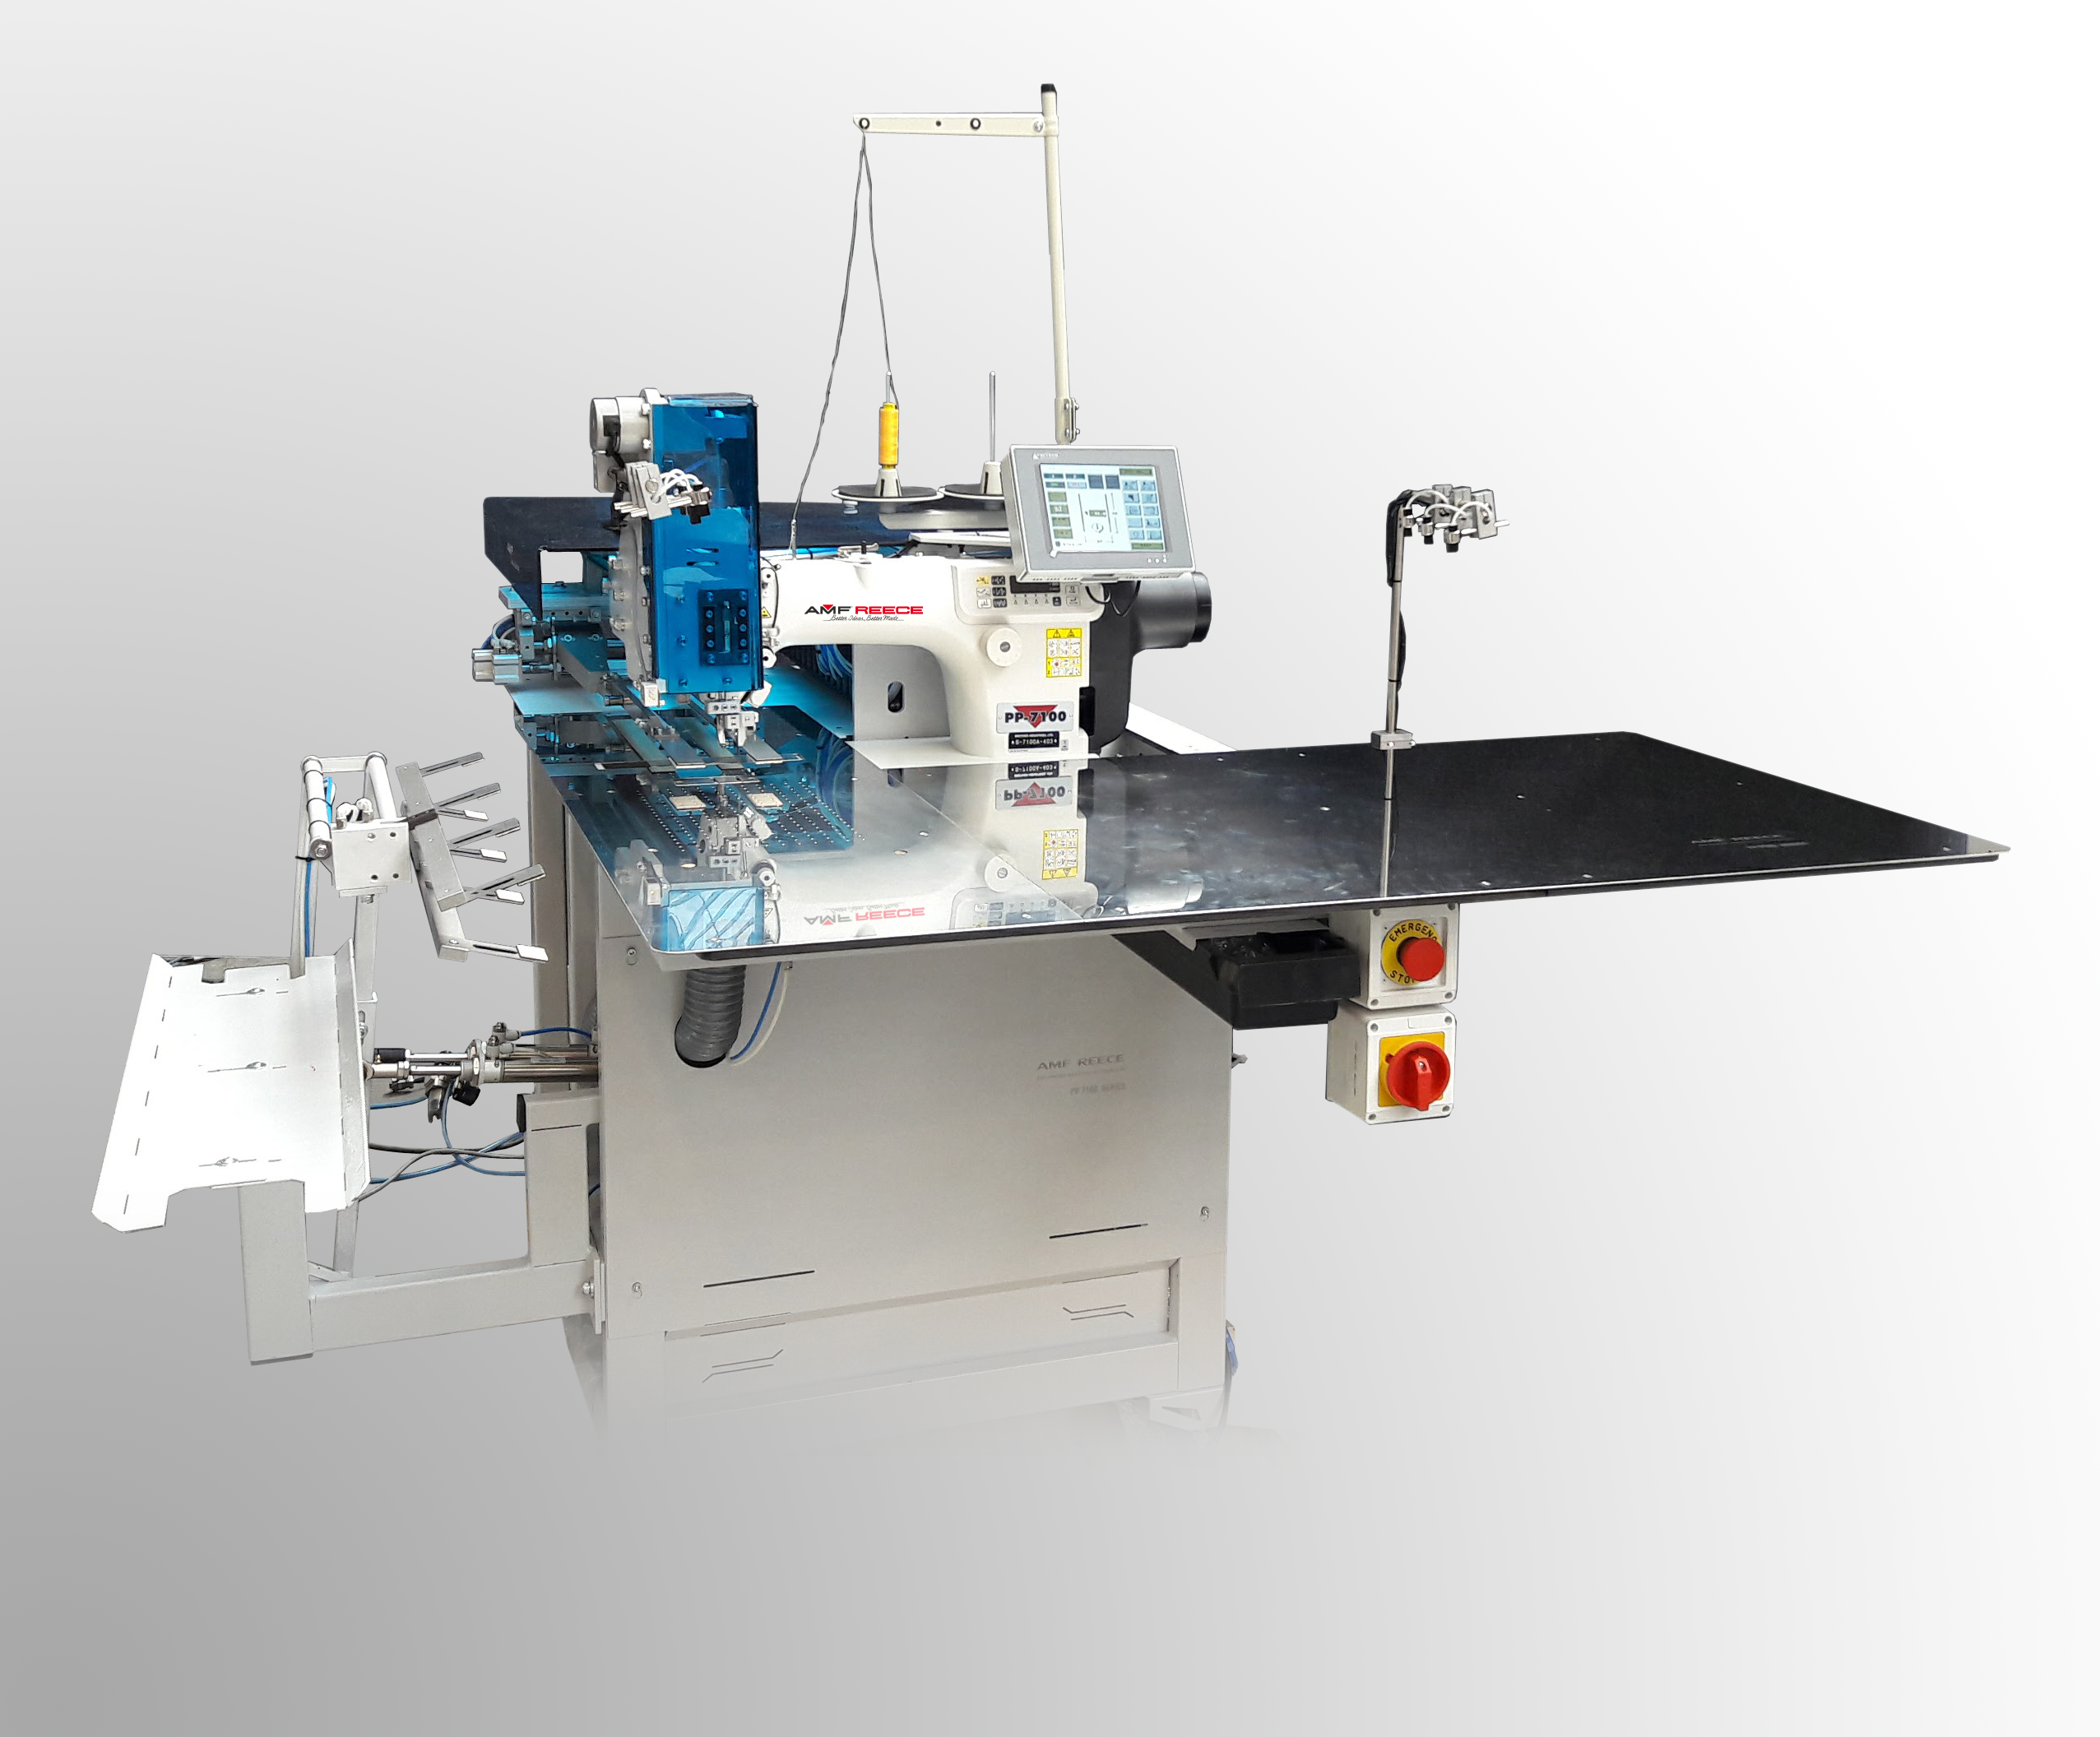 PP-7100 Polo Placket machine